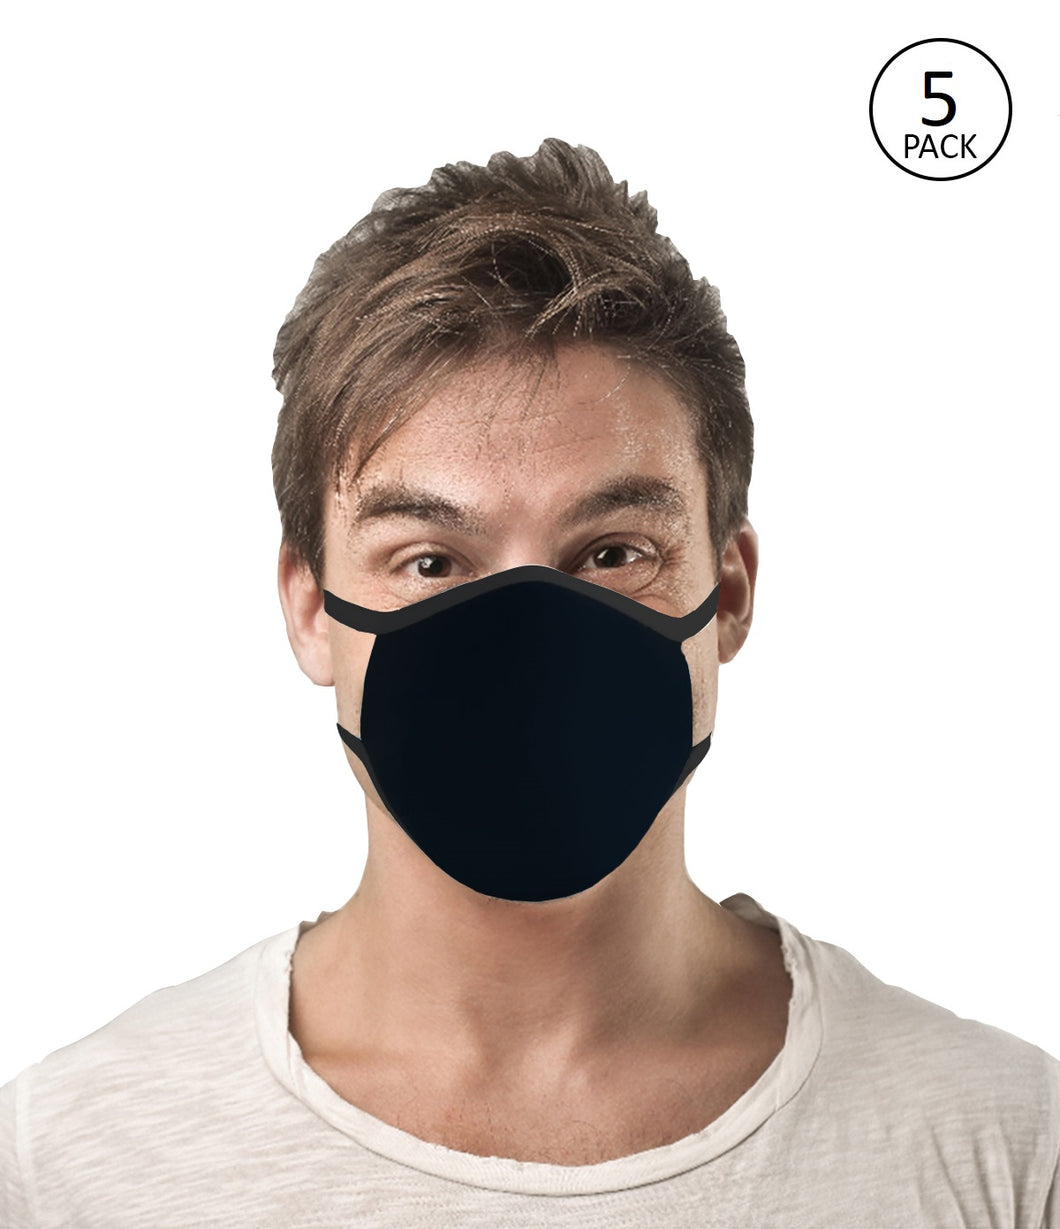 Black Face Mask Pack of 5